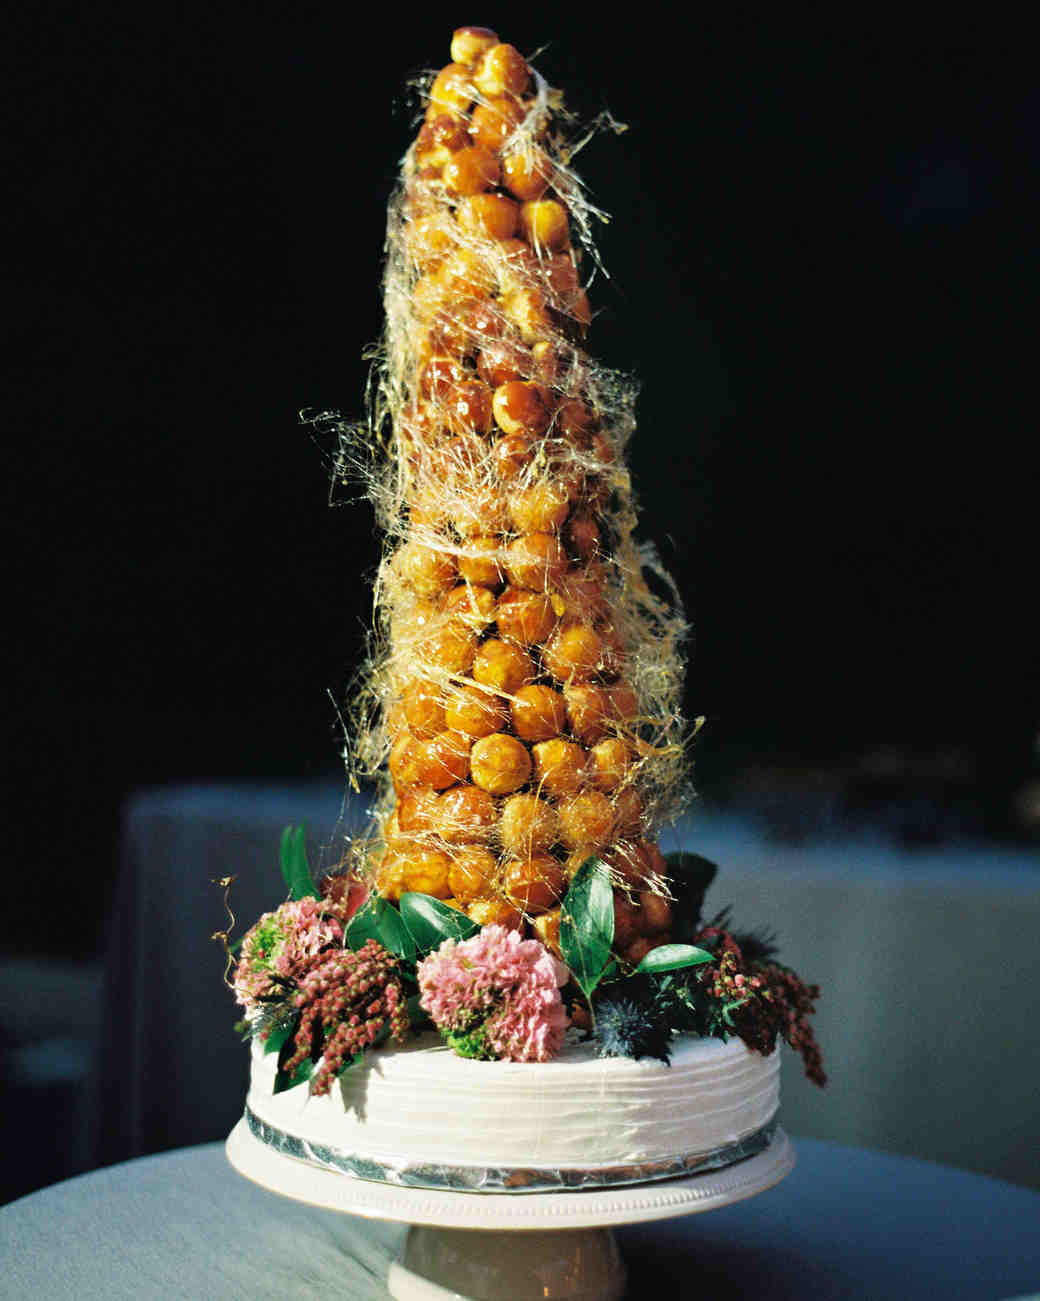 samantha michael wedding croquem bouche